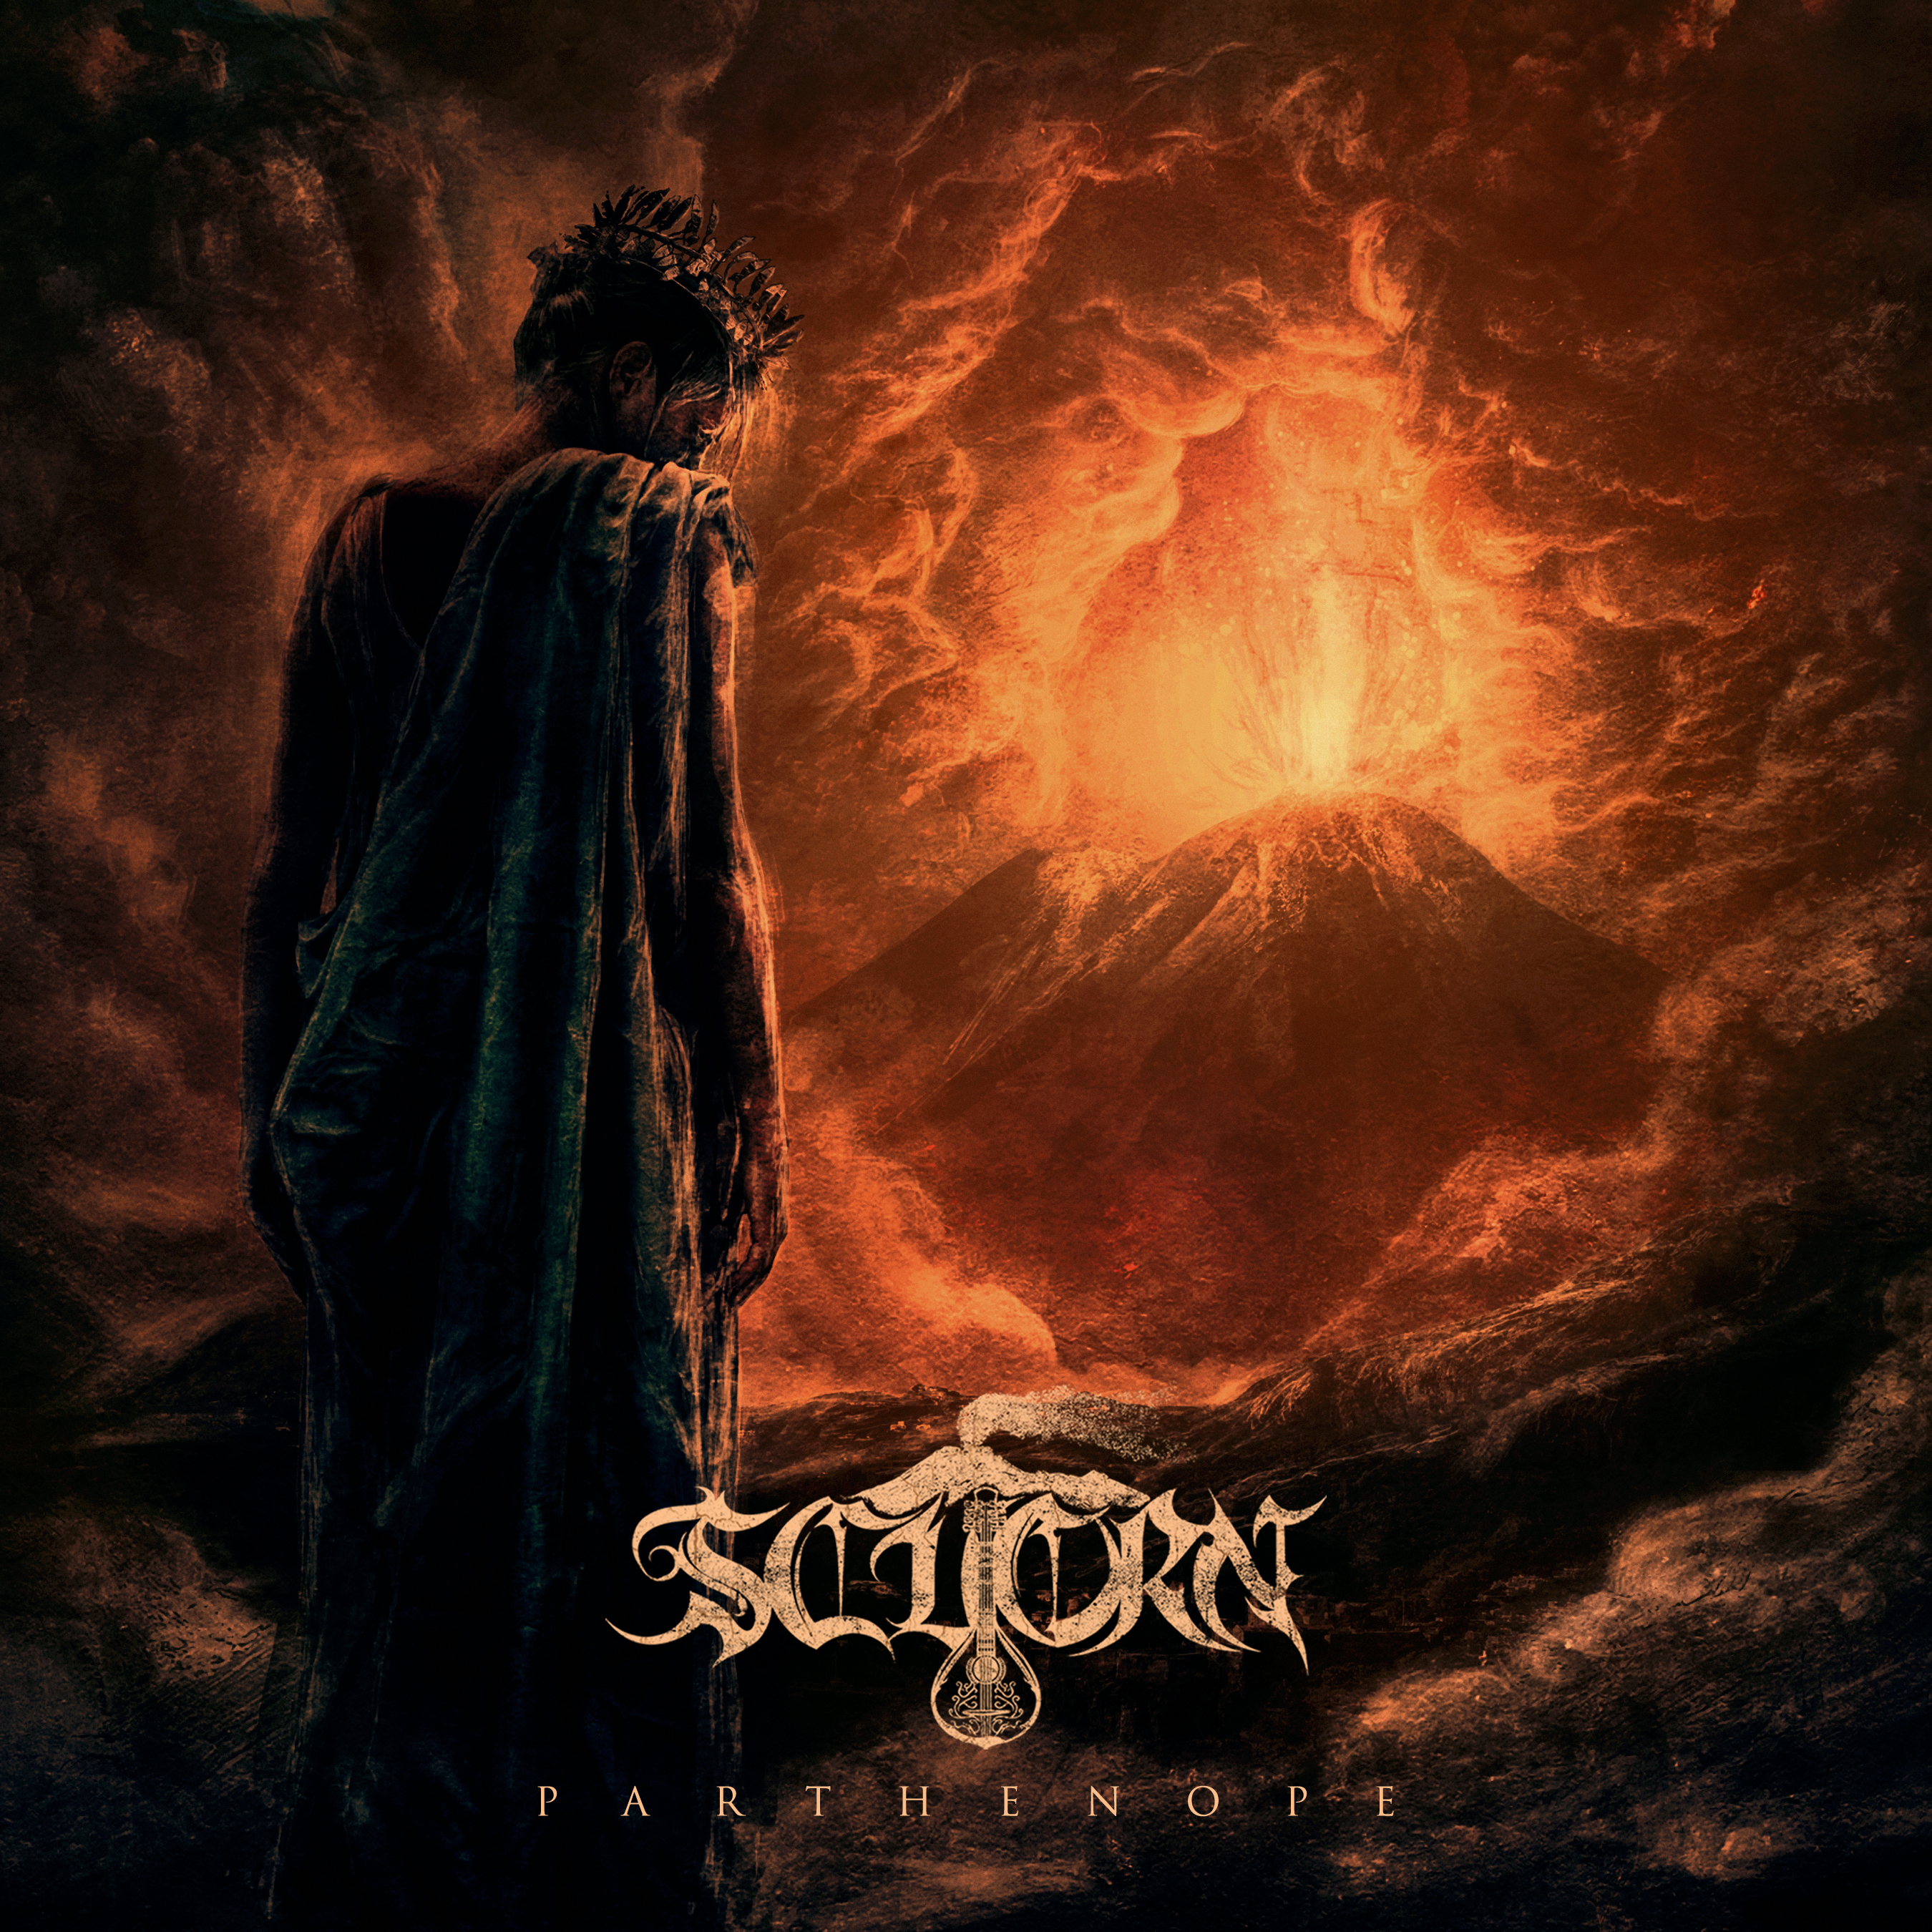 scuorn-parthenope-album-cover-2017-dusktone